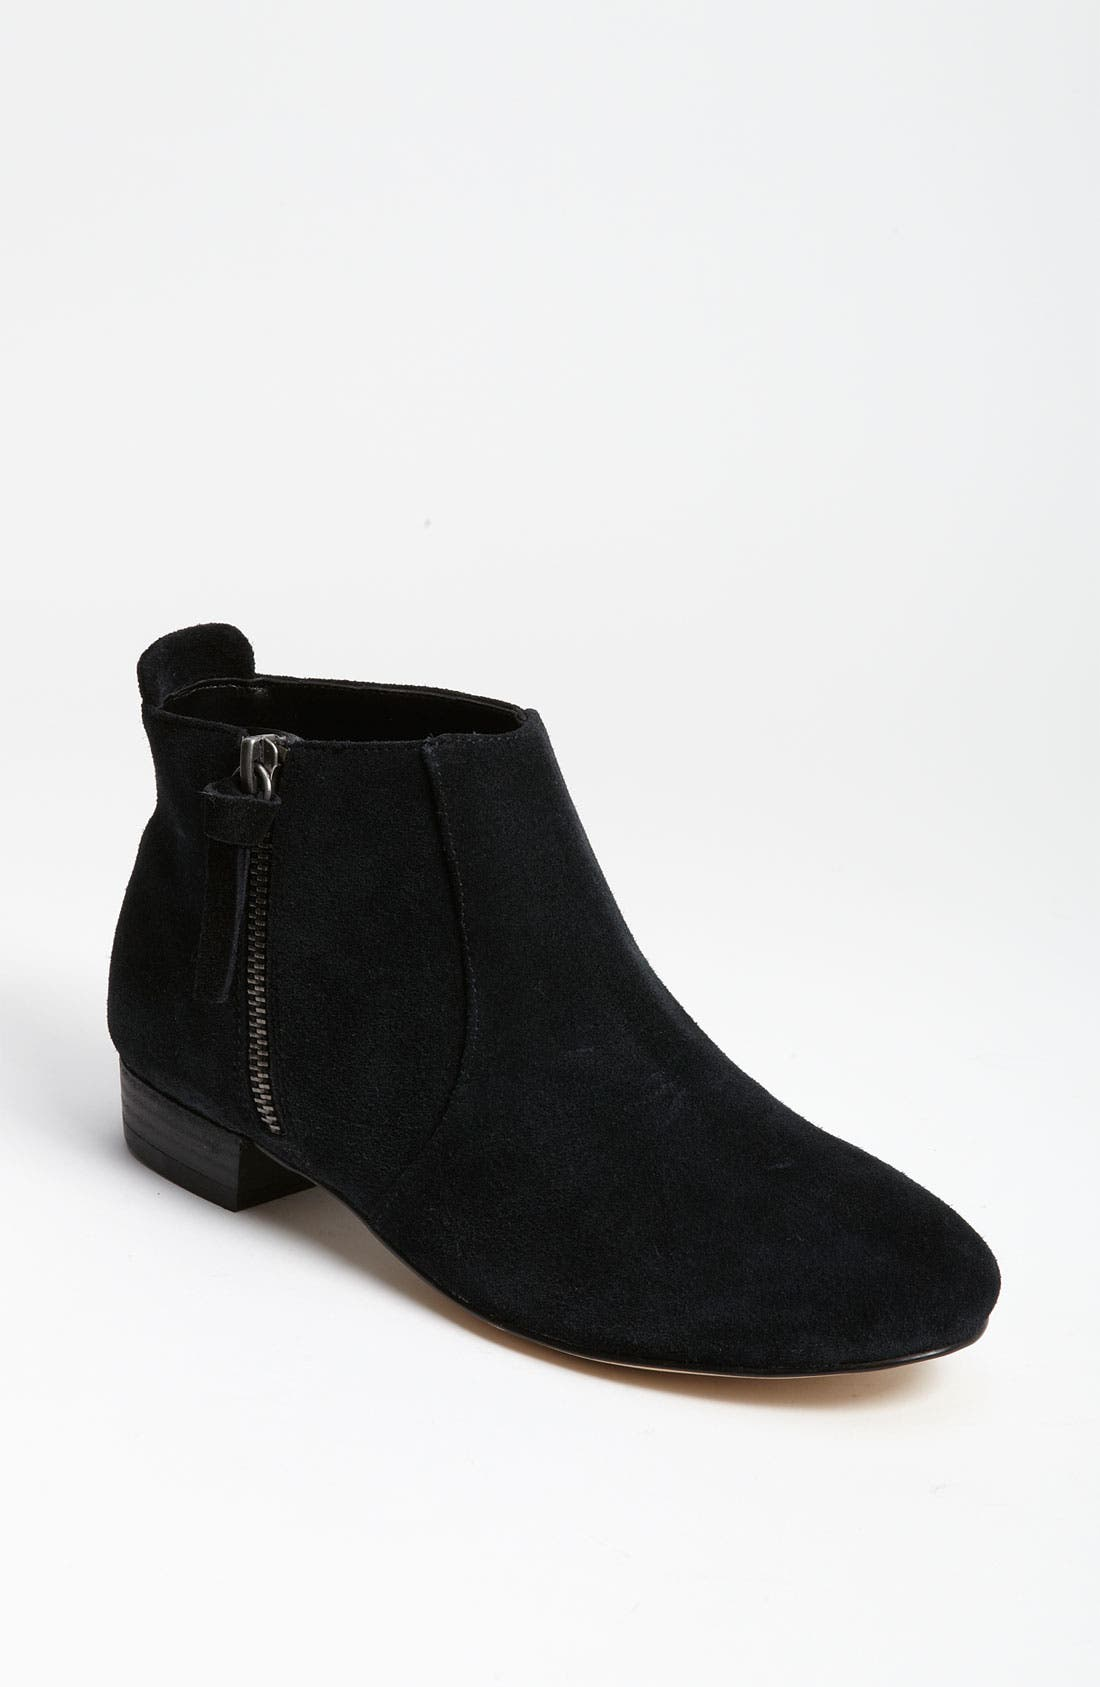 Main Image - DV by Dolce Vita 'Folly' Bootie